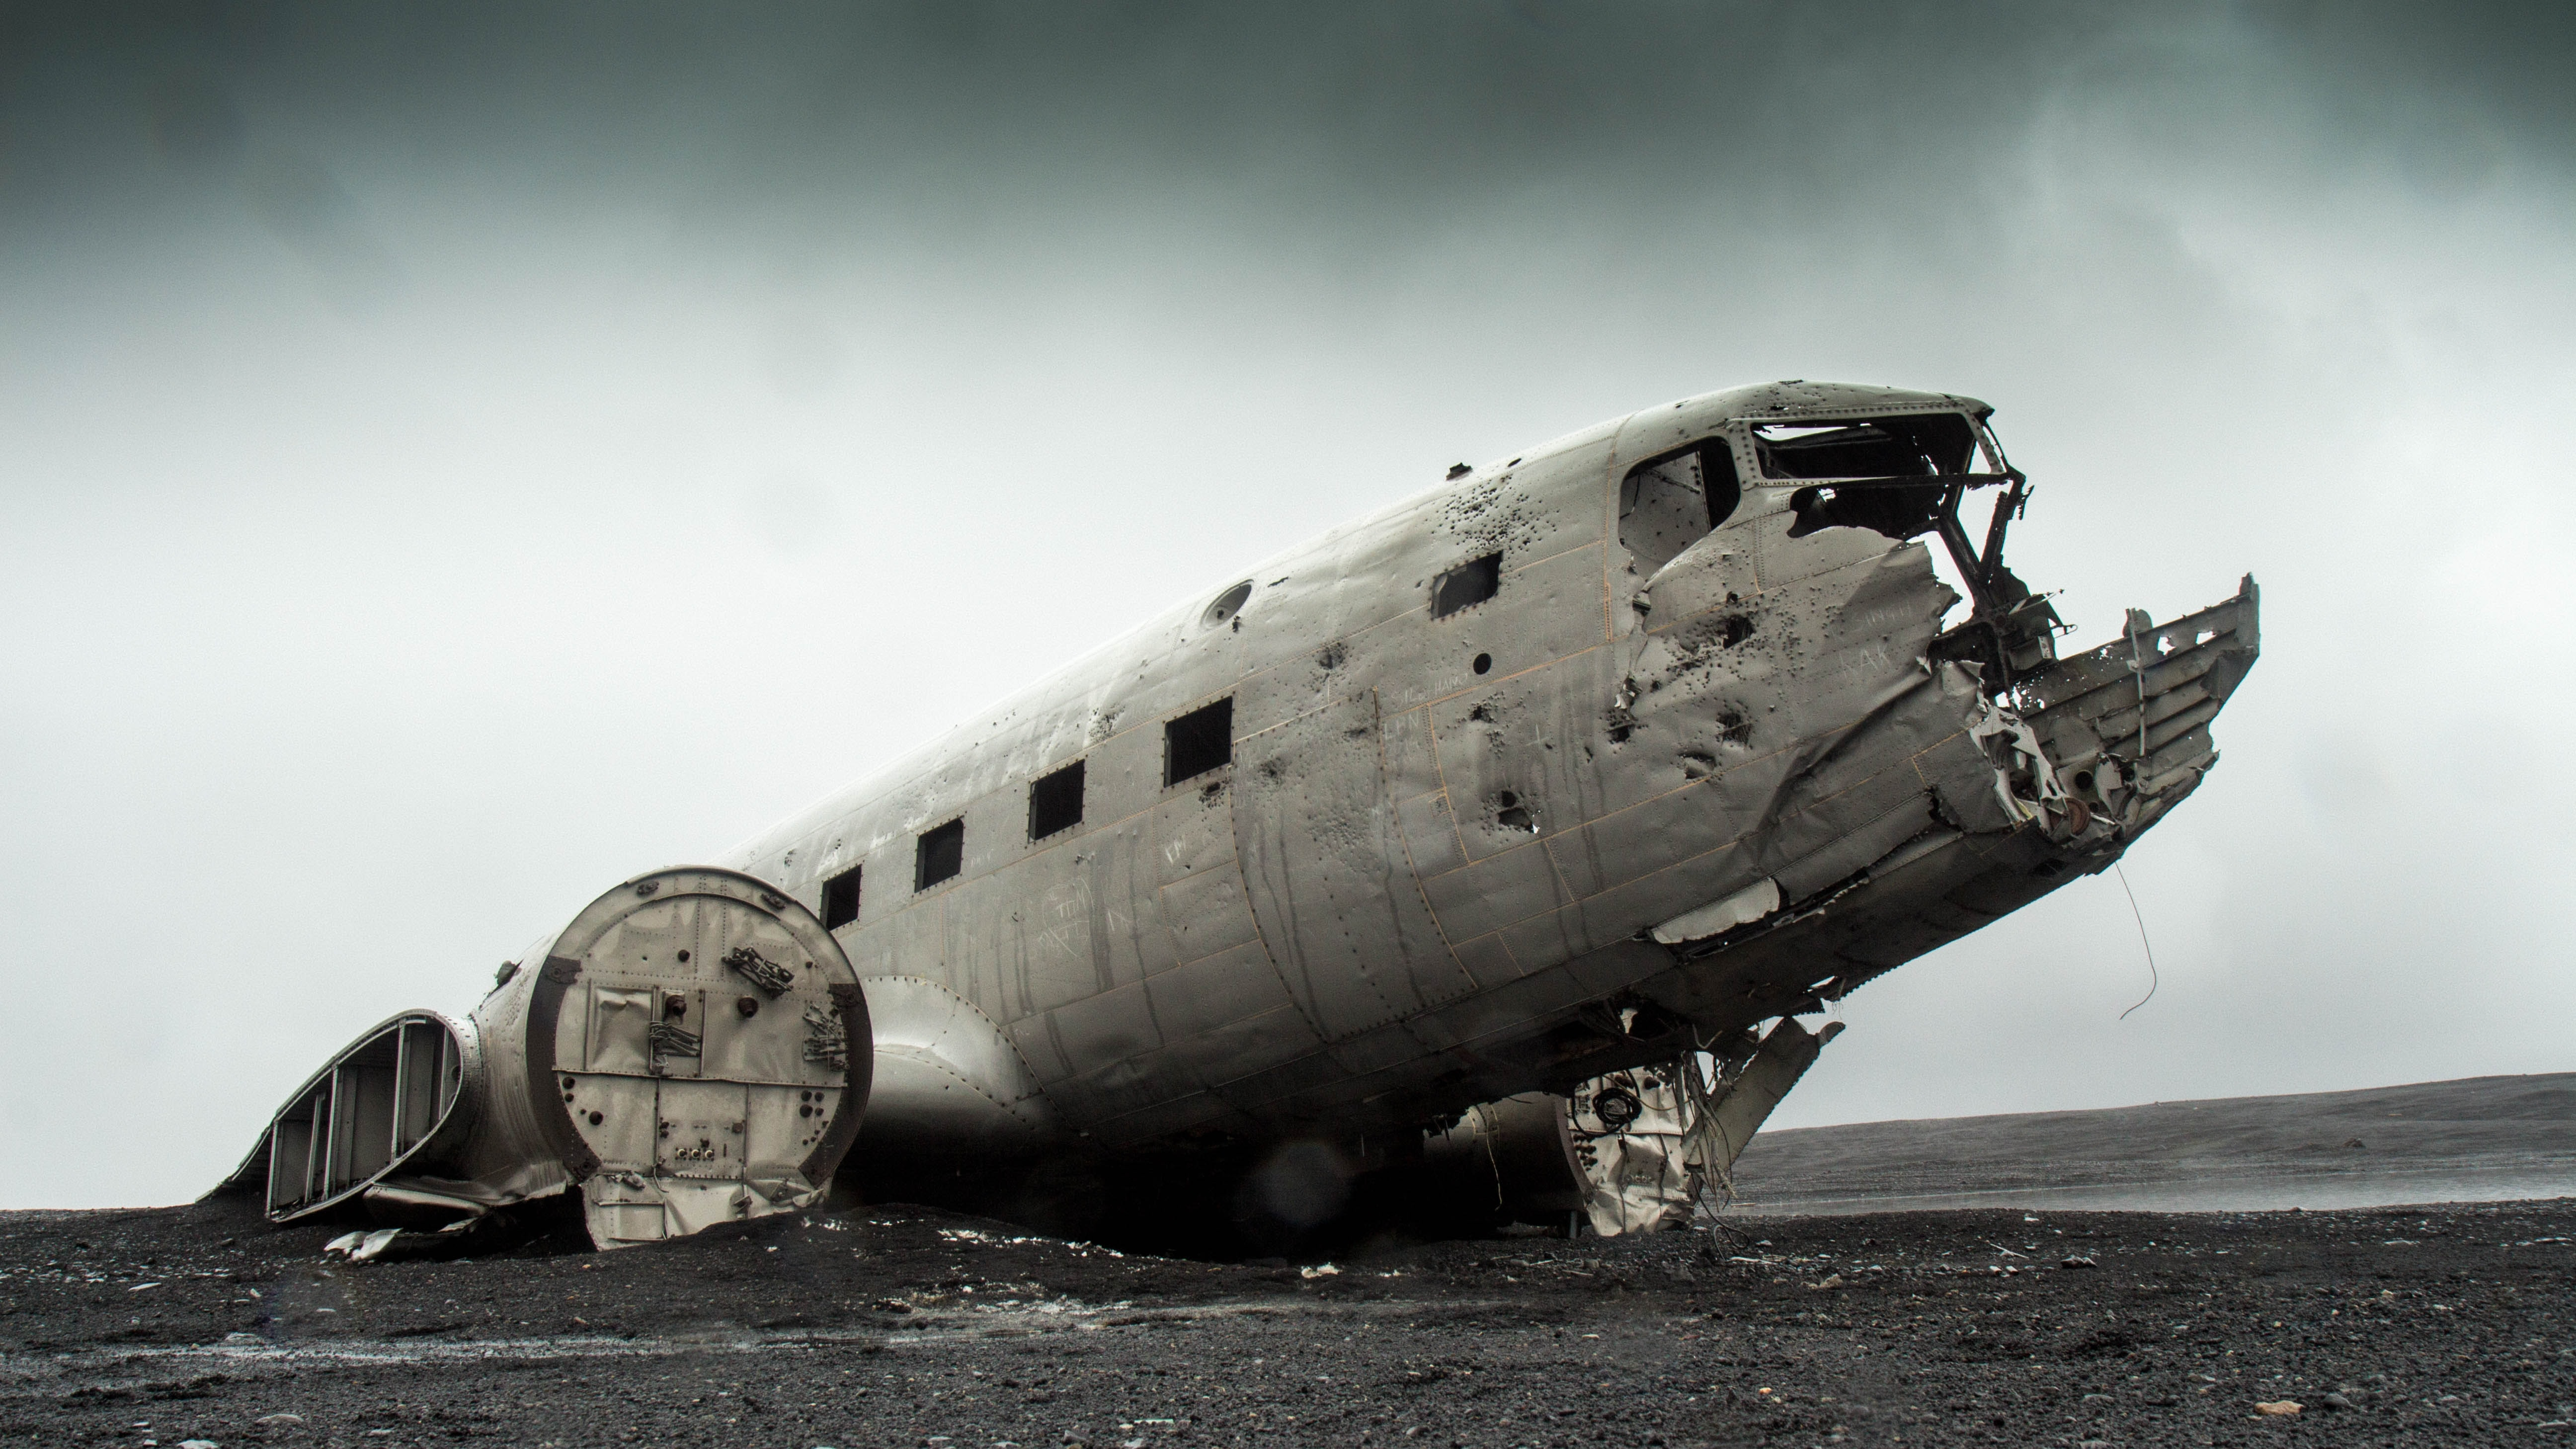 grayscale photo of wrecked plane